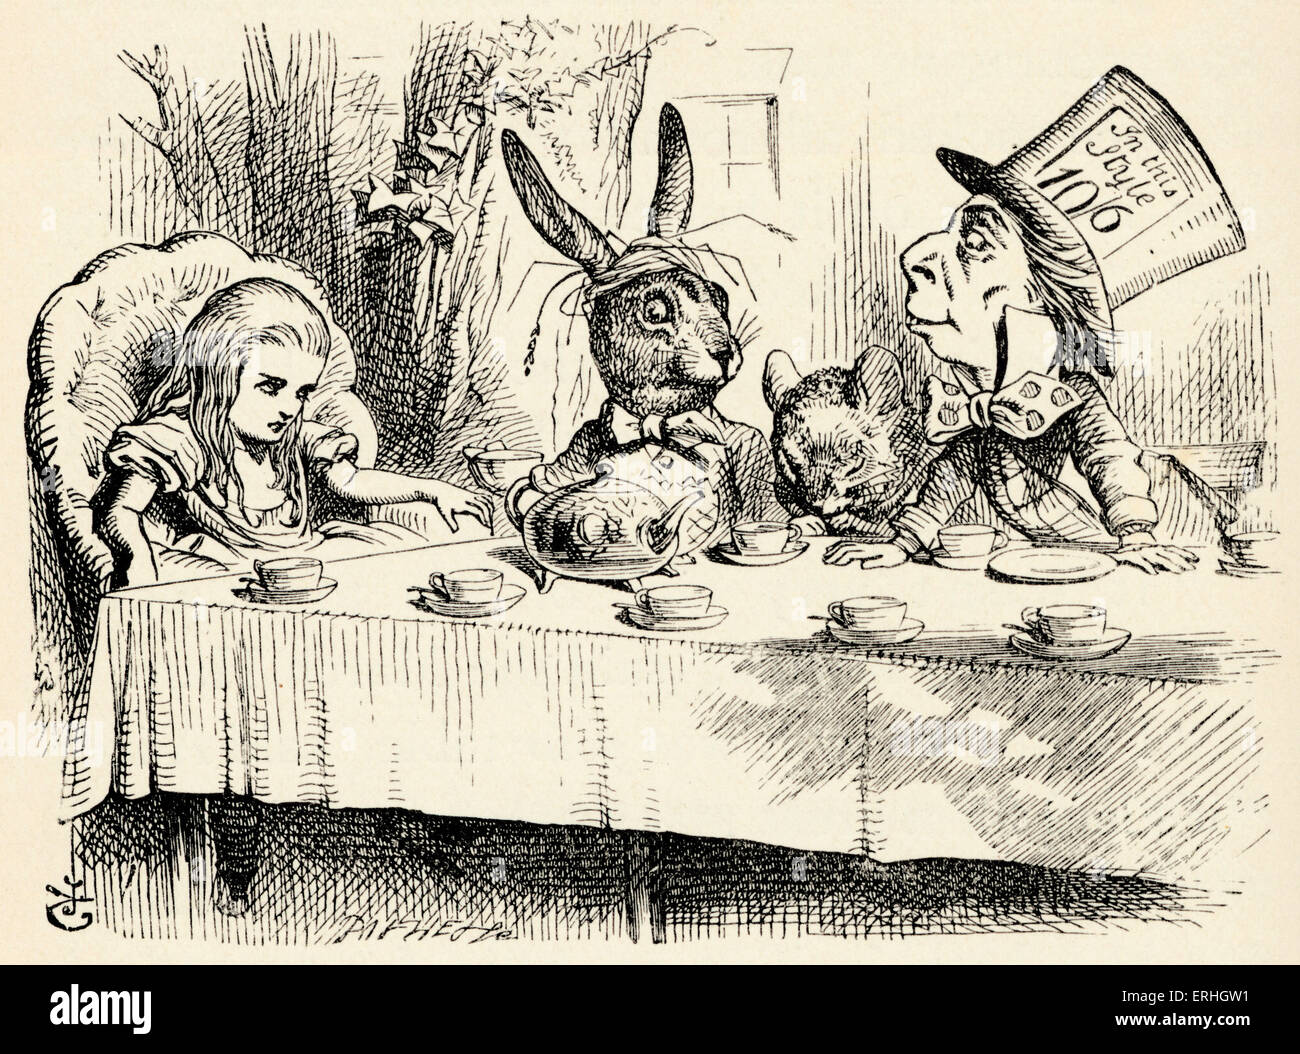 the dilemma of alice in alice in wonderland by lewis carroll Alice and the 'moral dilemma'  and then making a discovery about the connections throughout the 'freshwater circle' to lewis carroll and one work in particular.